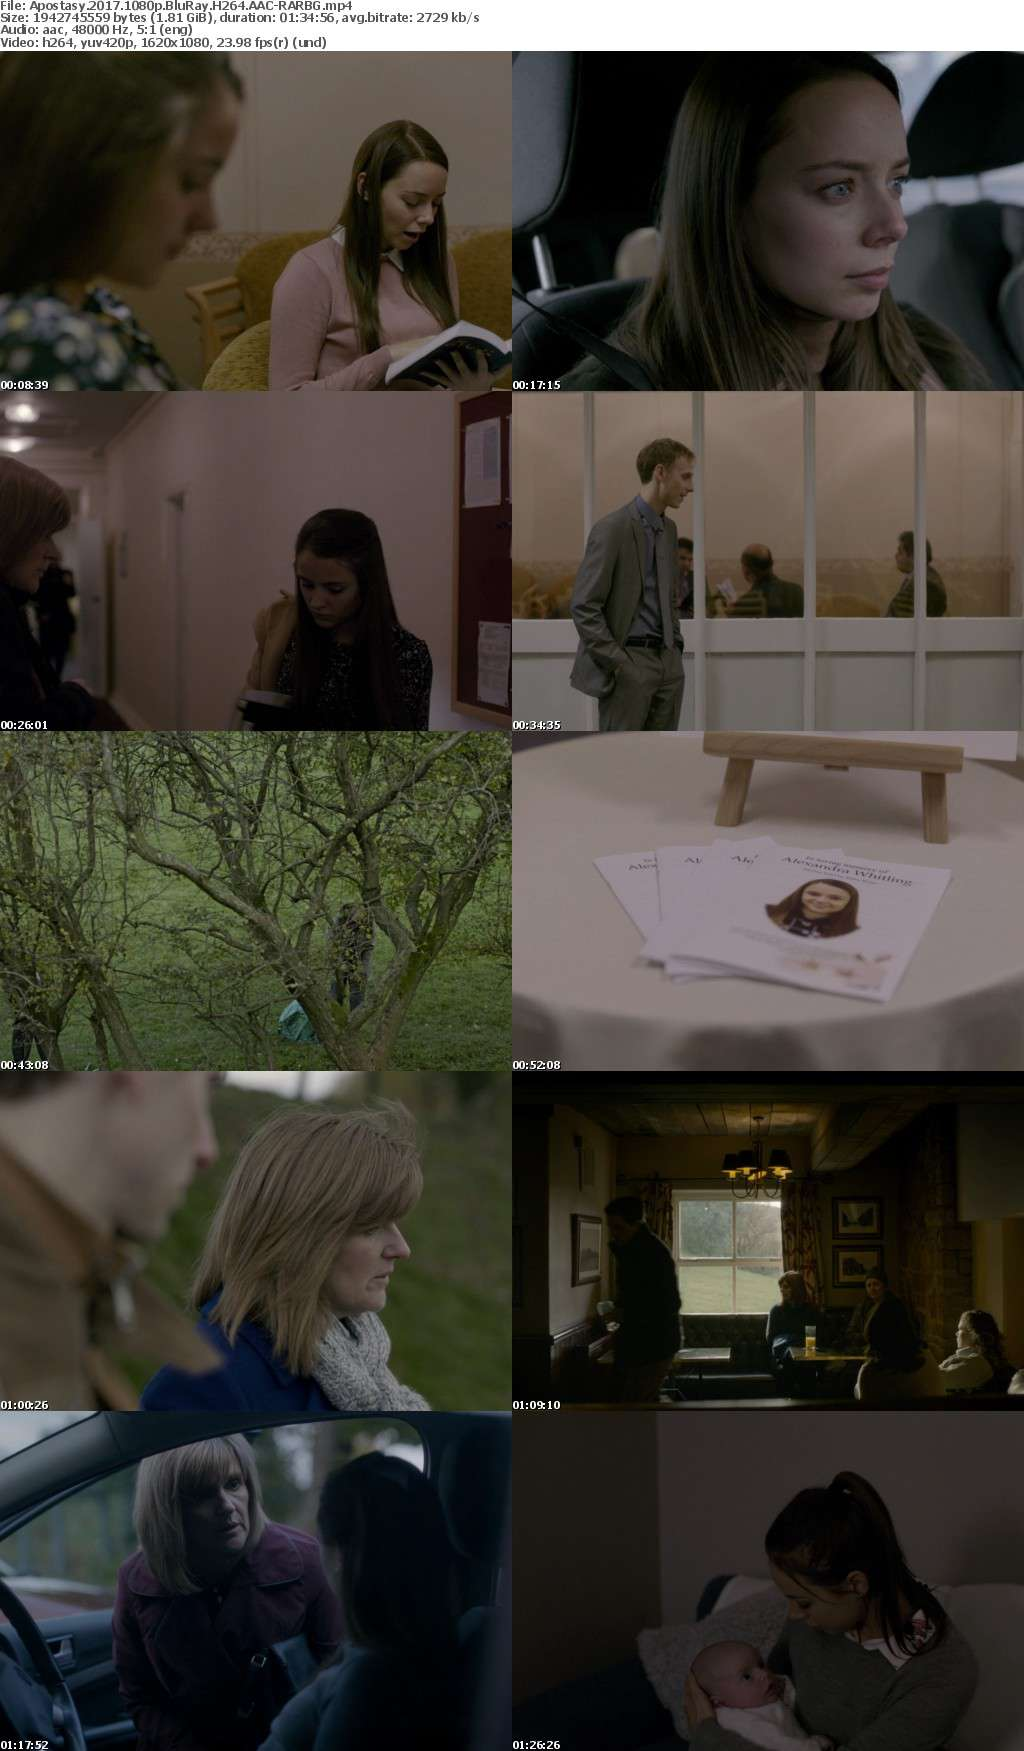 Apostasy 2017 1080p BluRay H264 AAC-RARBG